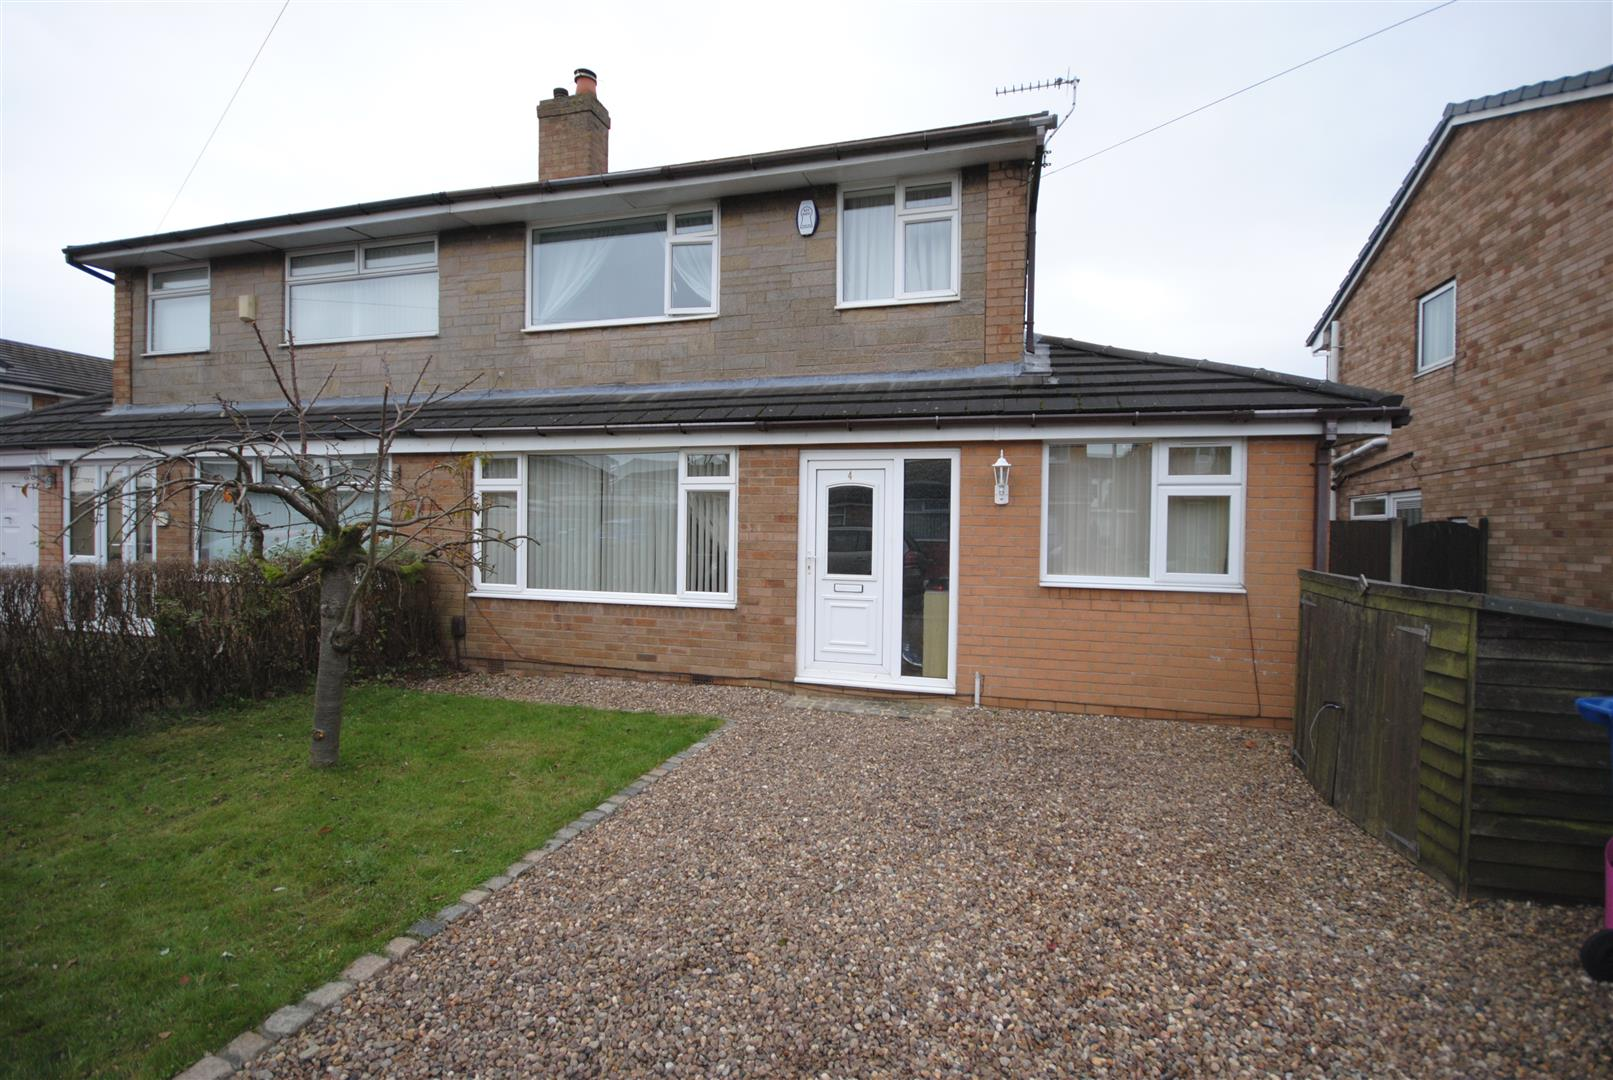 3 Bedrooms Semi Detached House for sale in Woodvale Avenue, Aspull, Wigan